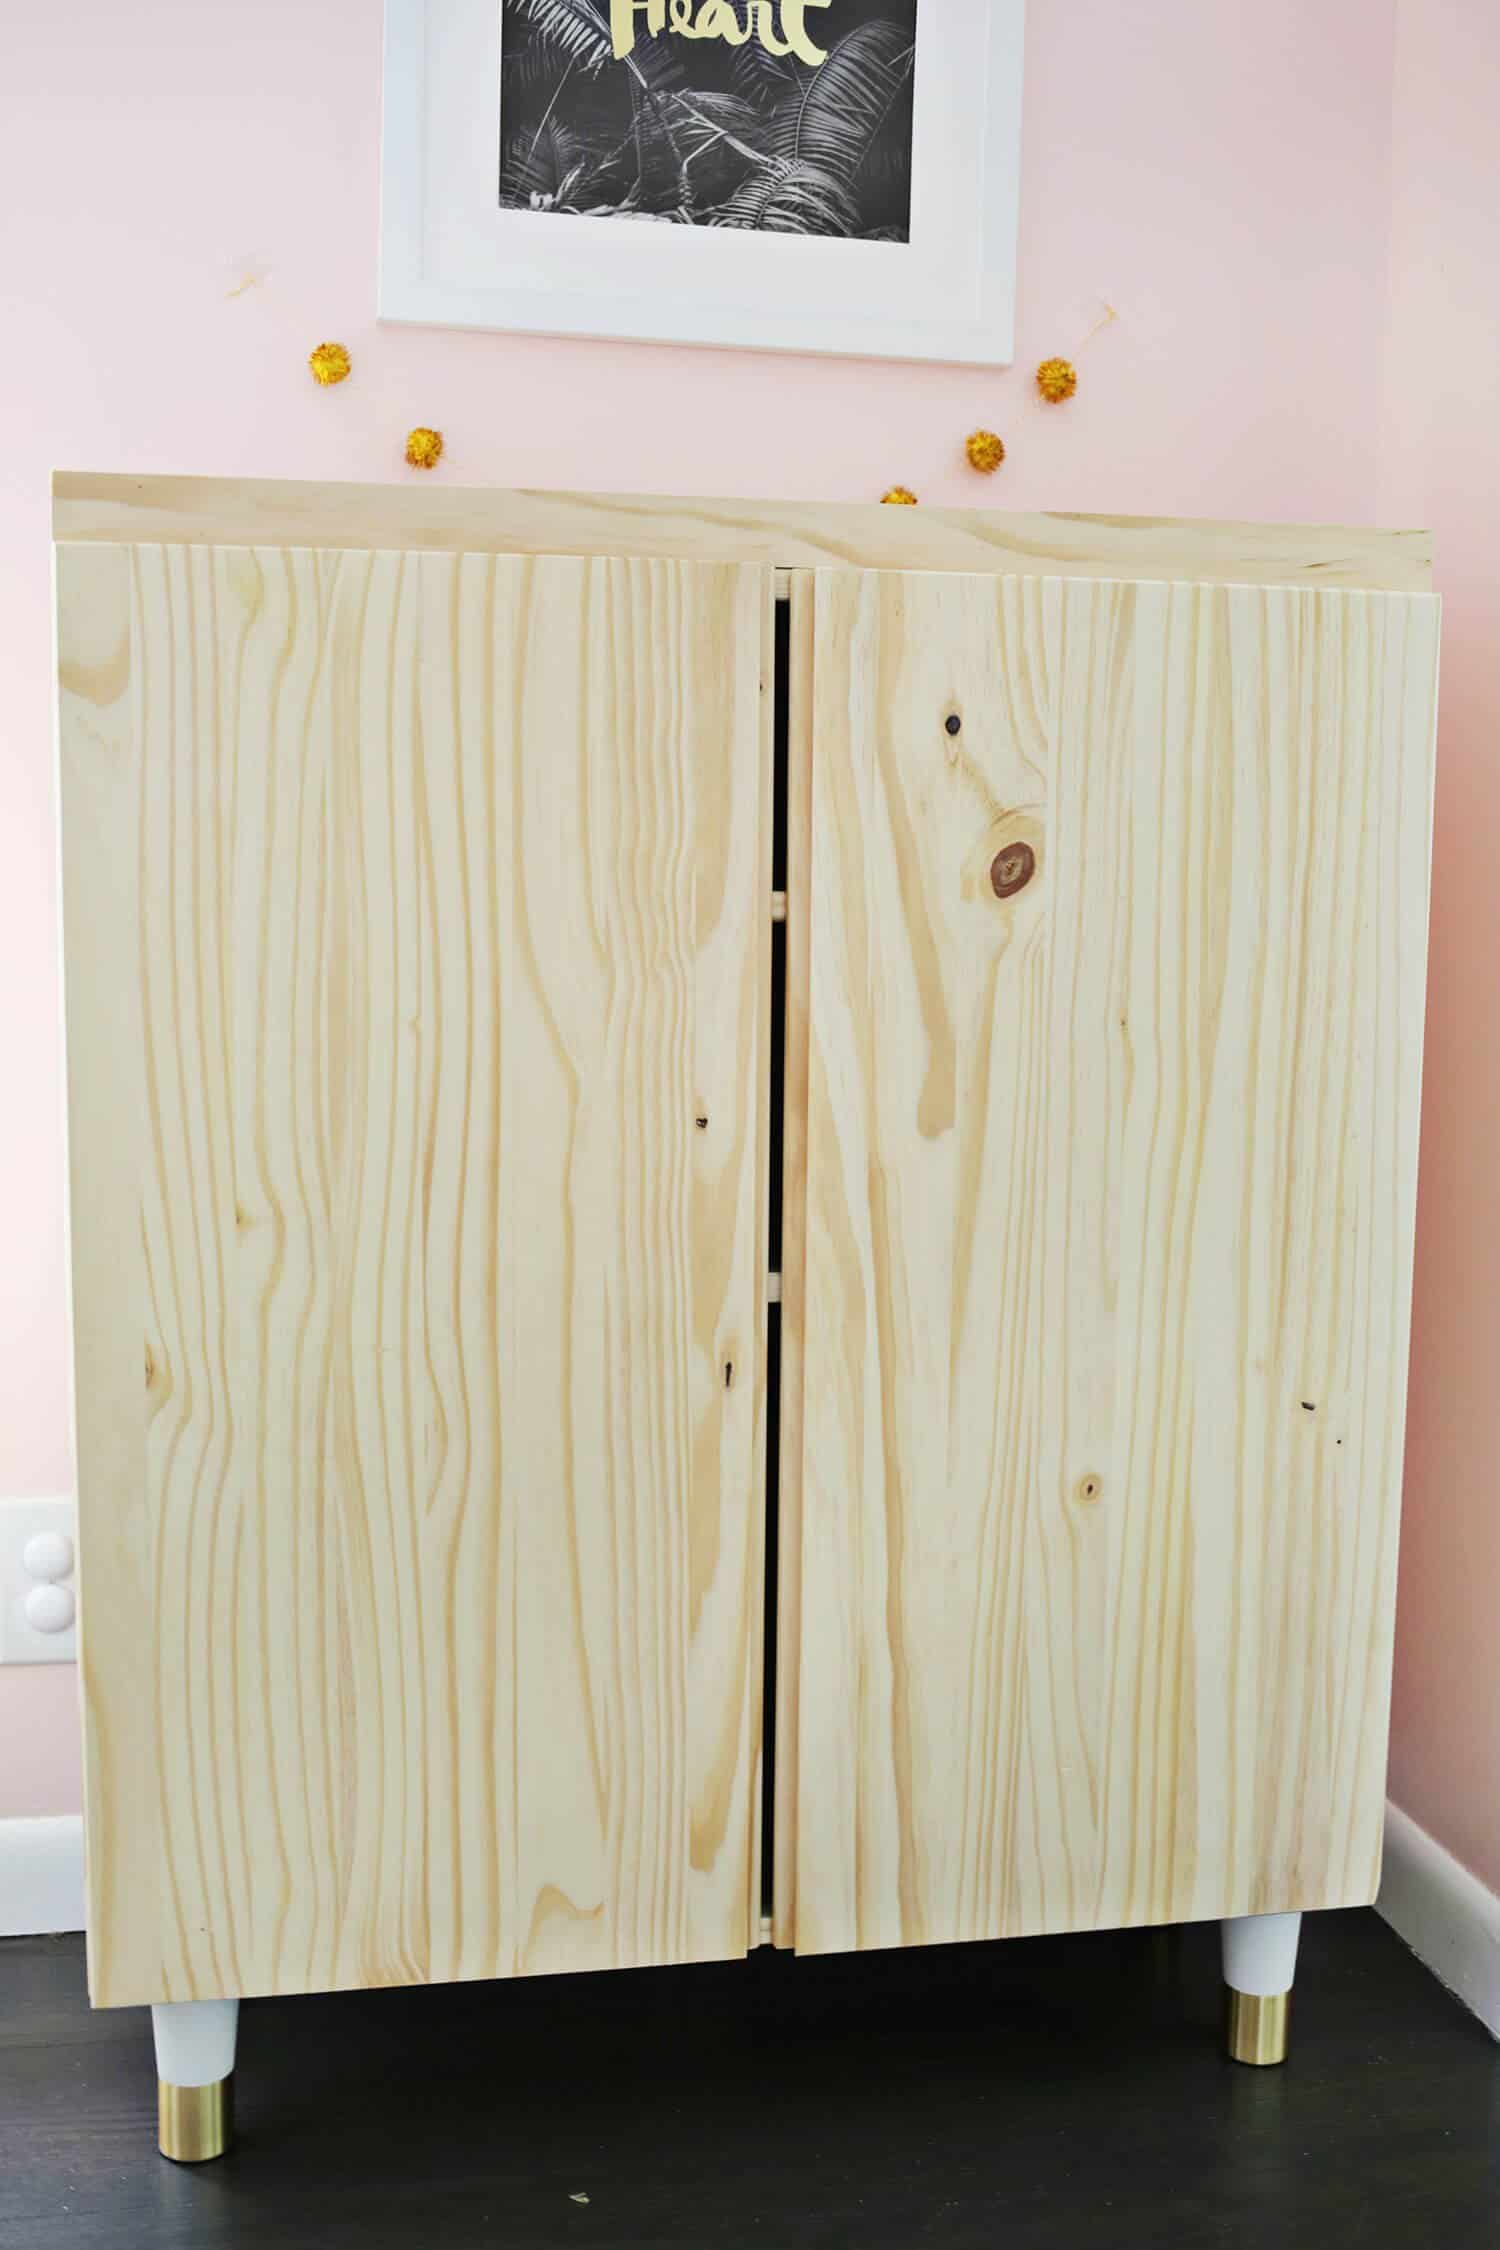 Ikea Wardrobe Leaning To One Side Ikea Ivar Cabinet Hack Turned Into A Bar Cabinet A